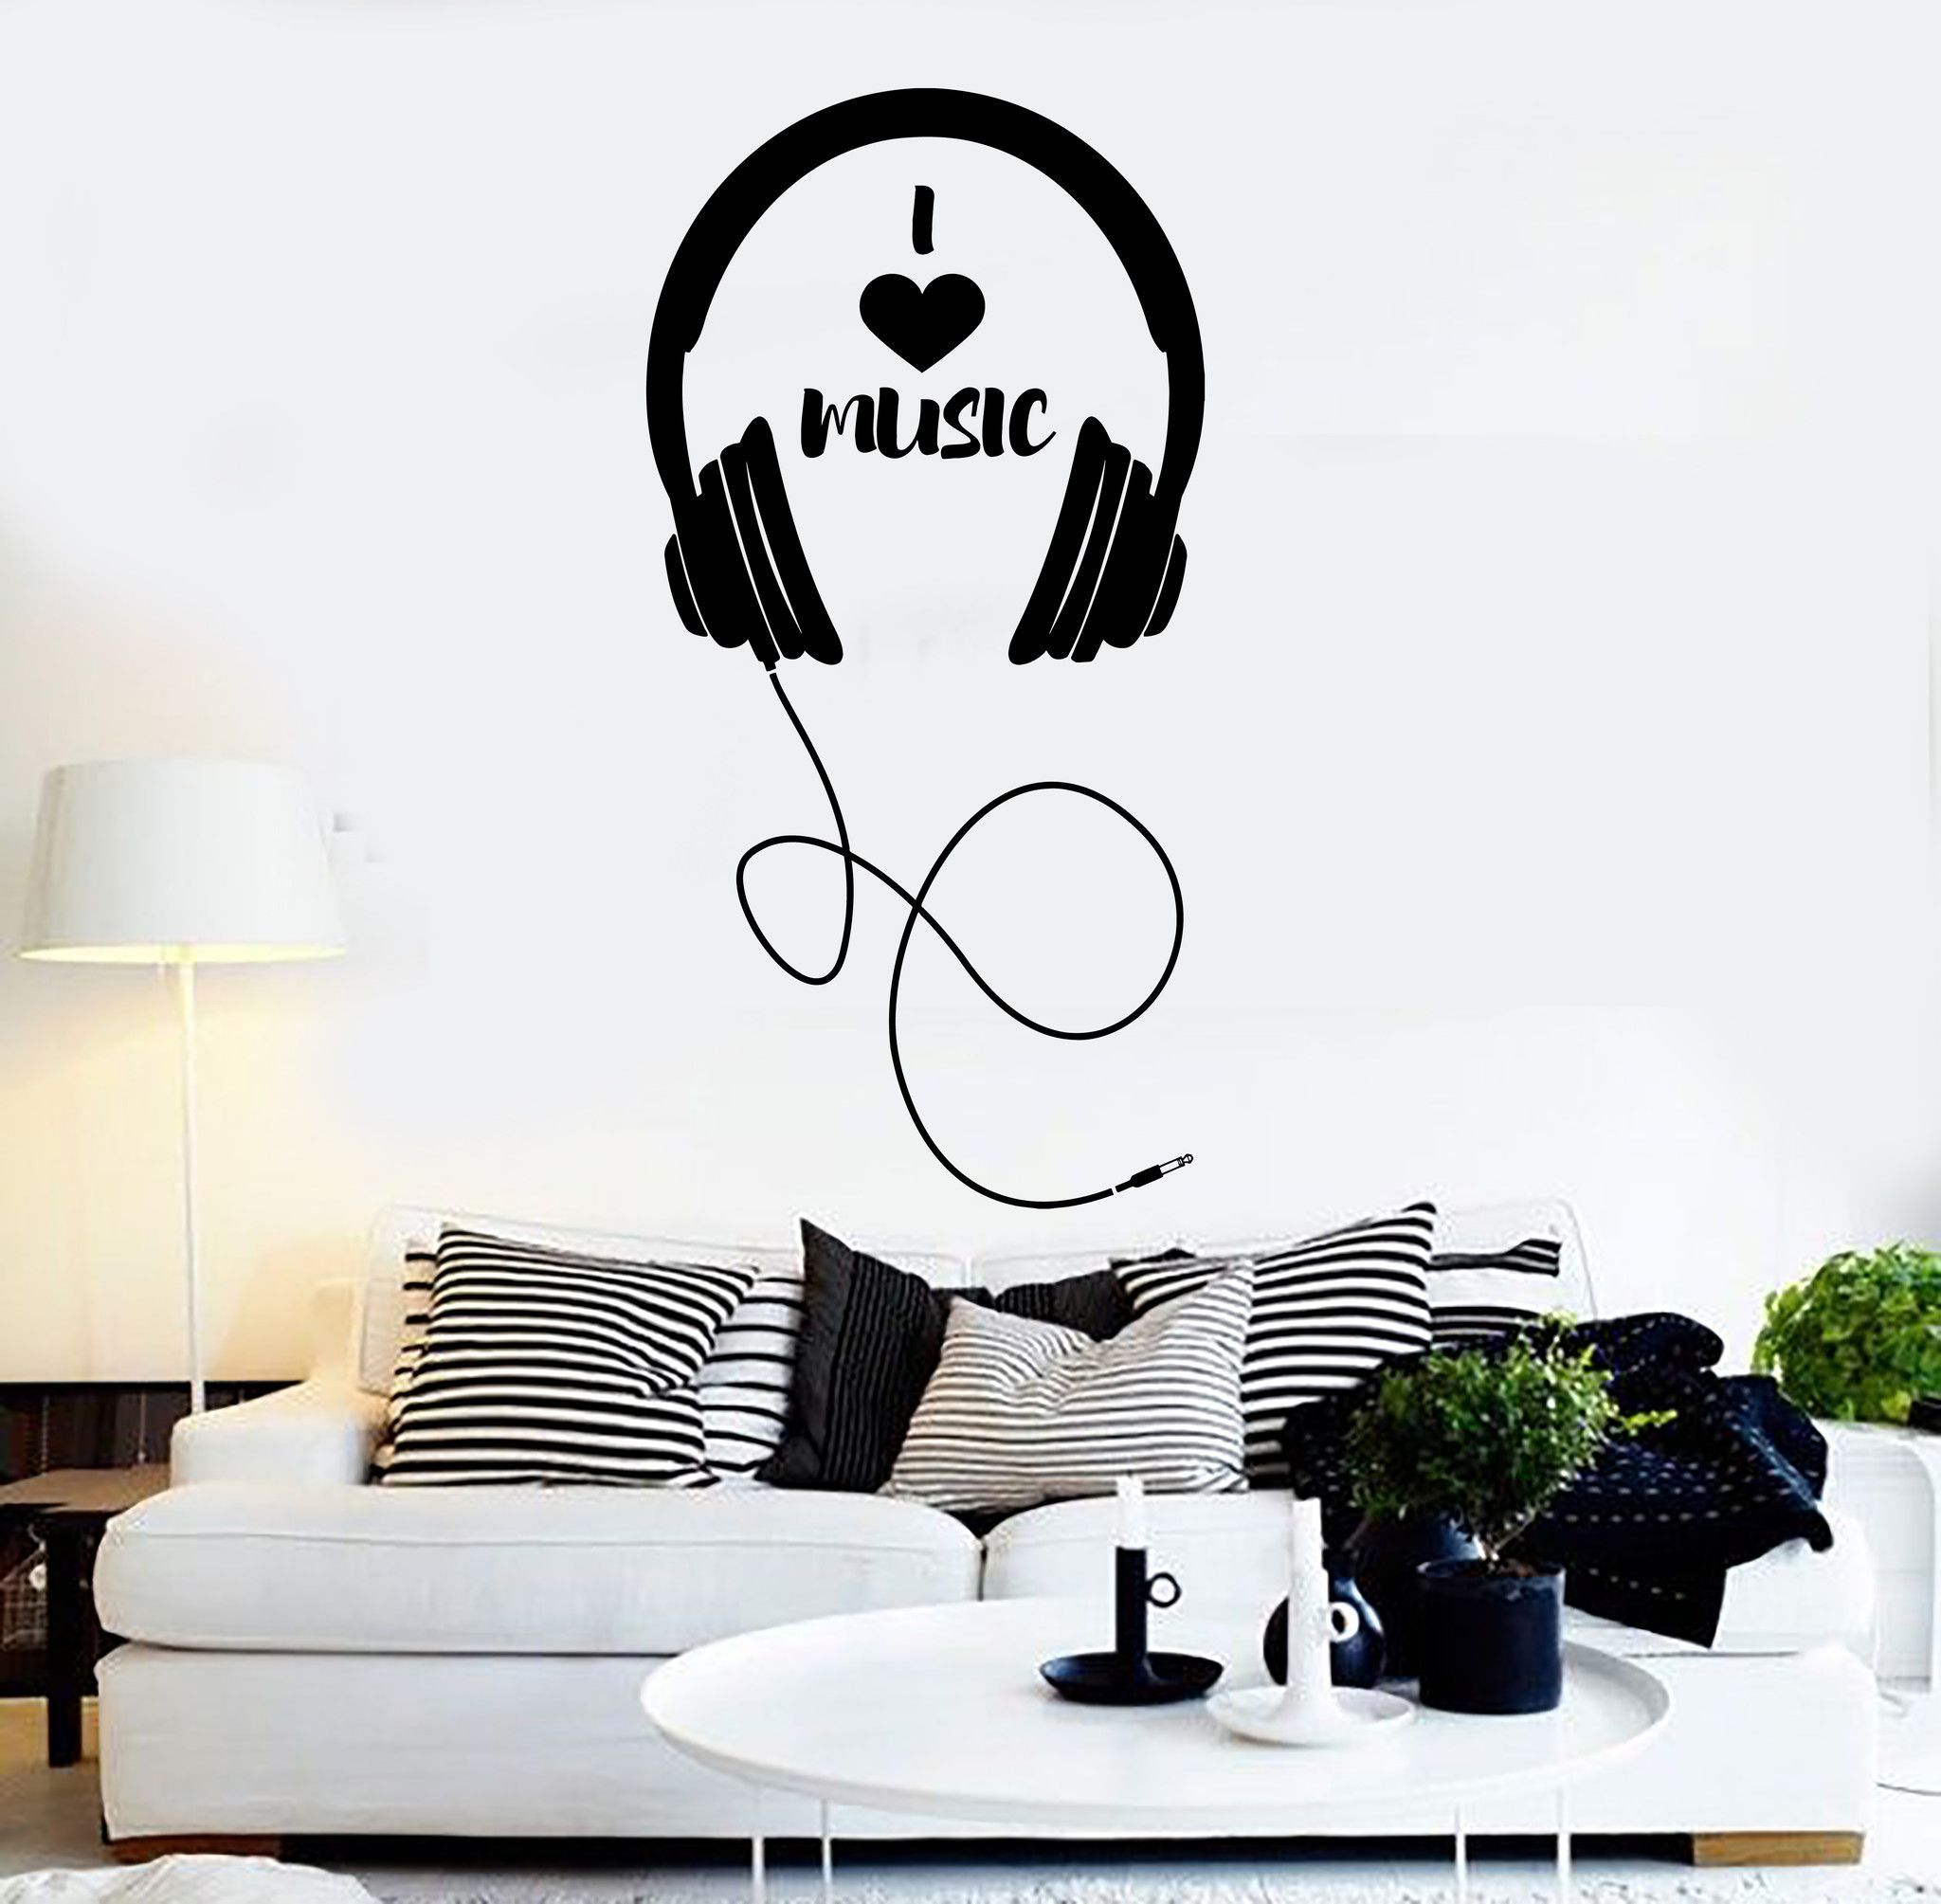 Vinyl Wall Decal Headphones Musical Decor Teen Room Stickers Mural - Wall stickers for bedrooms teens